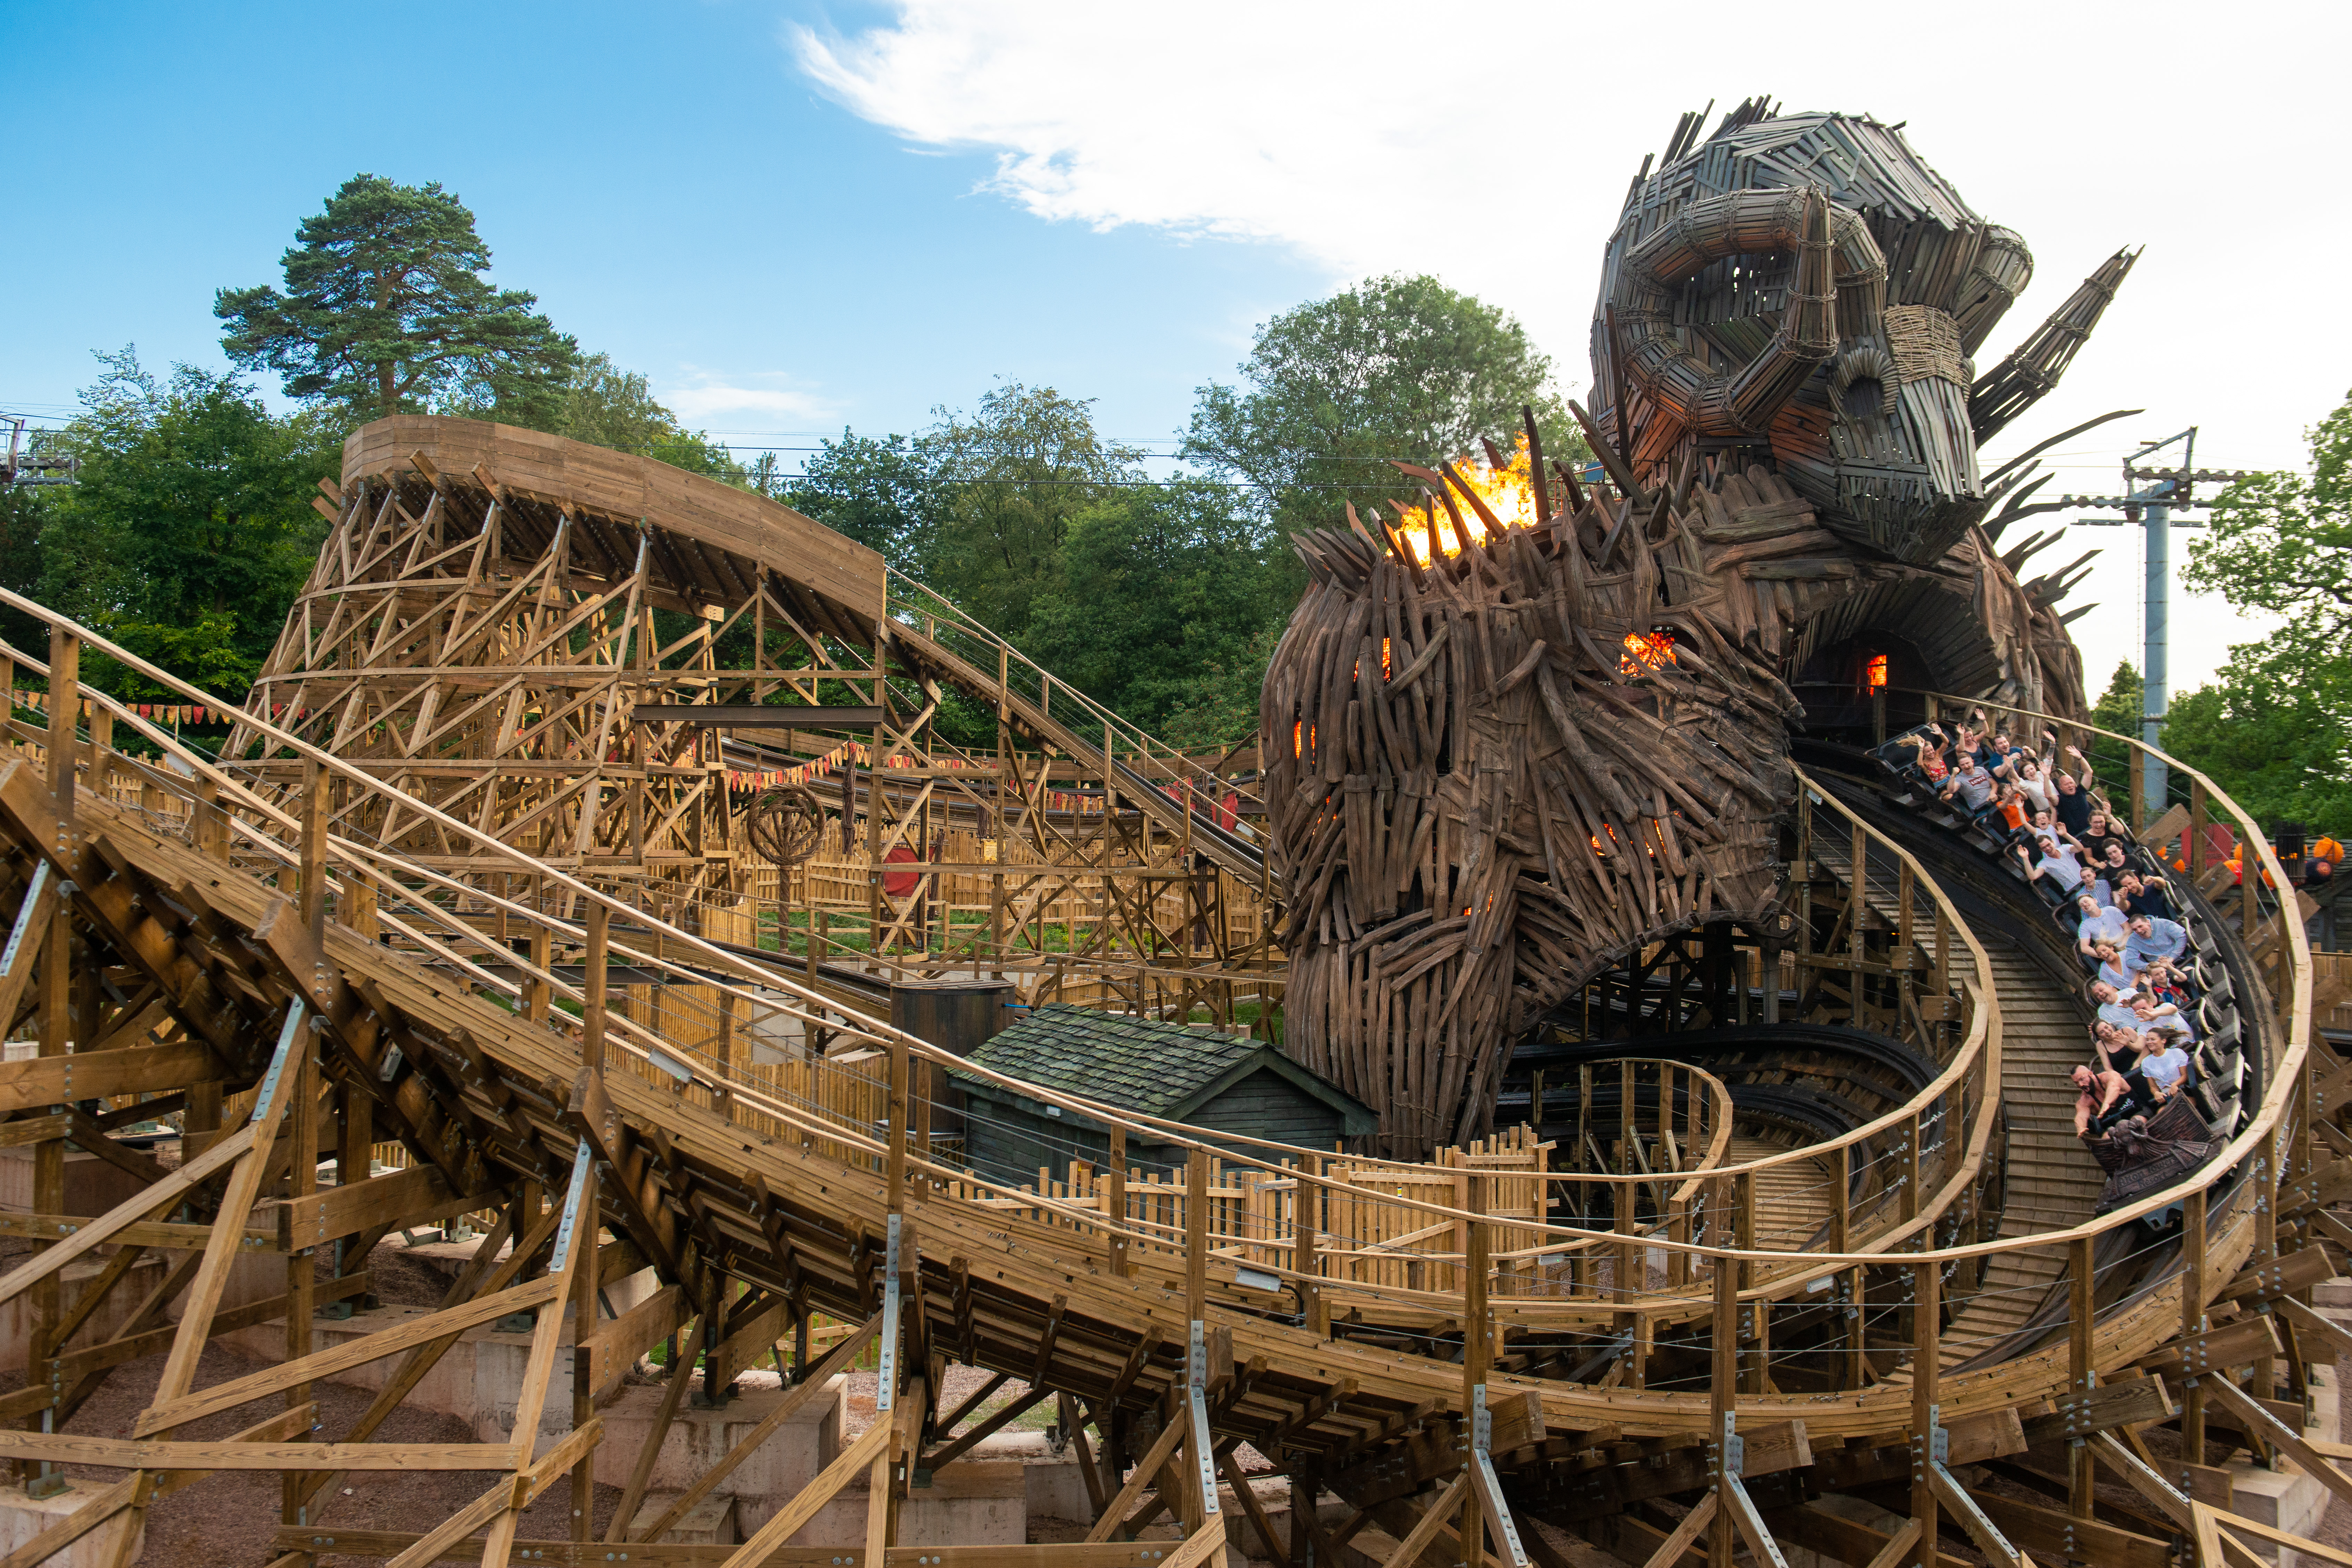 Wicker Man Structure